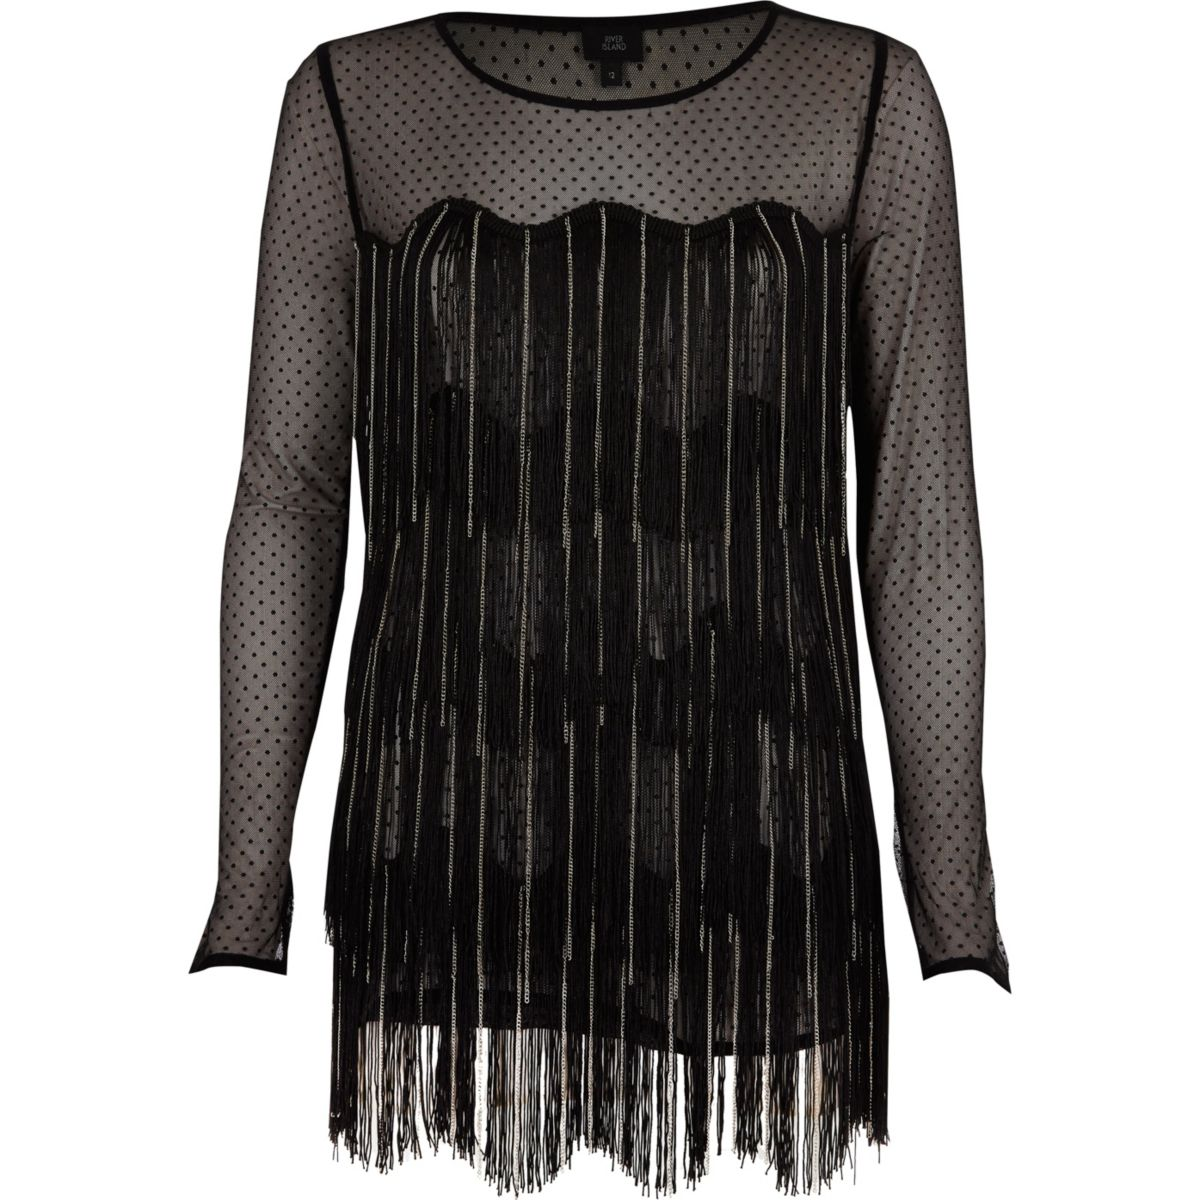 Black dobby mesh fringed long sleeve top